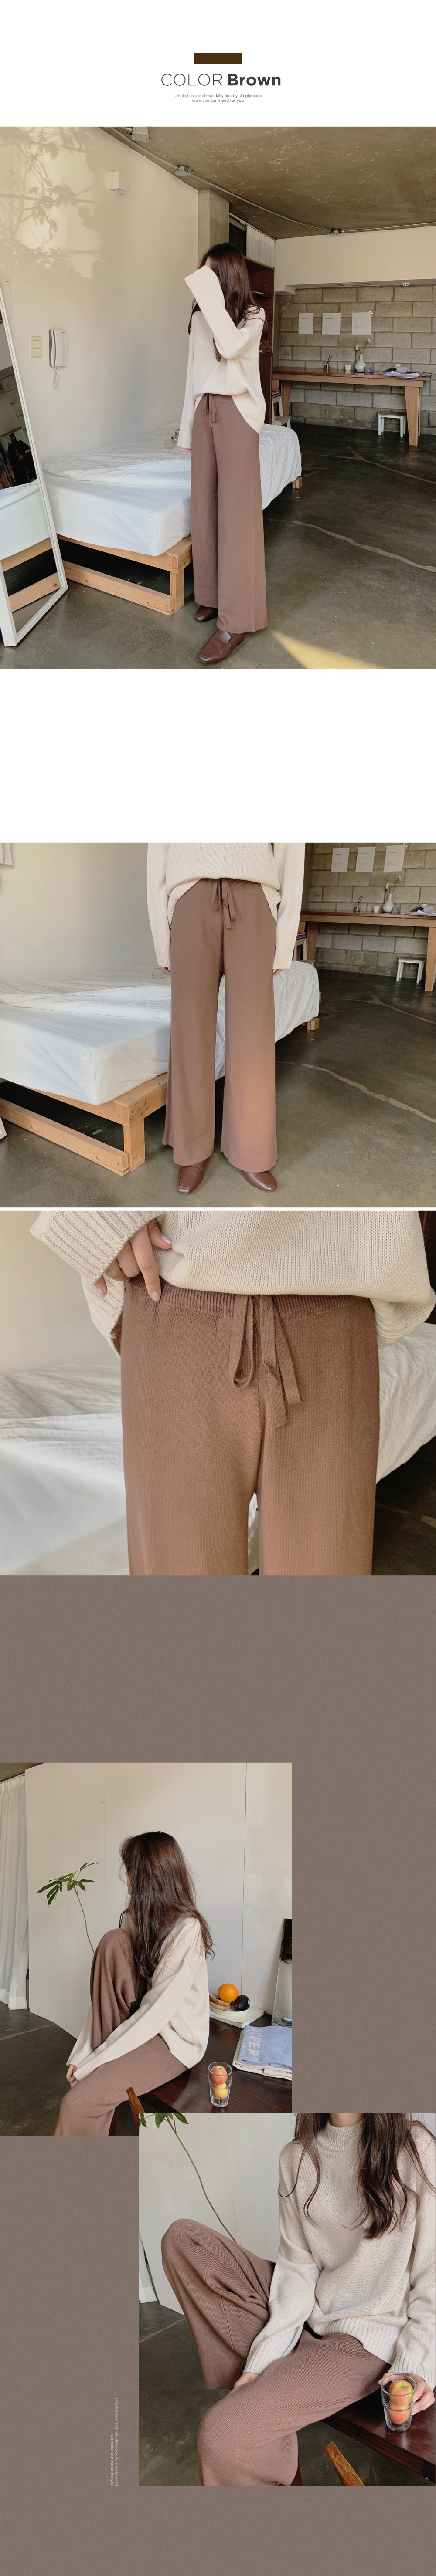 Wecan banding knit trousers